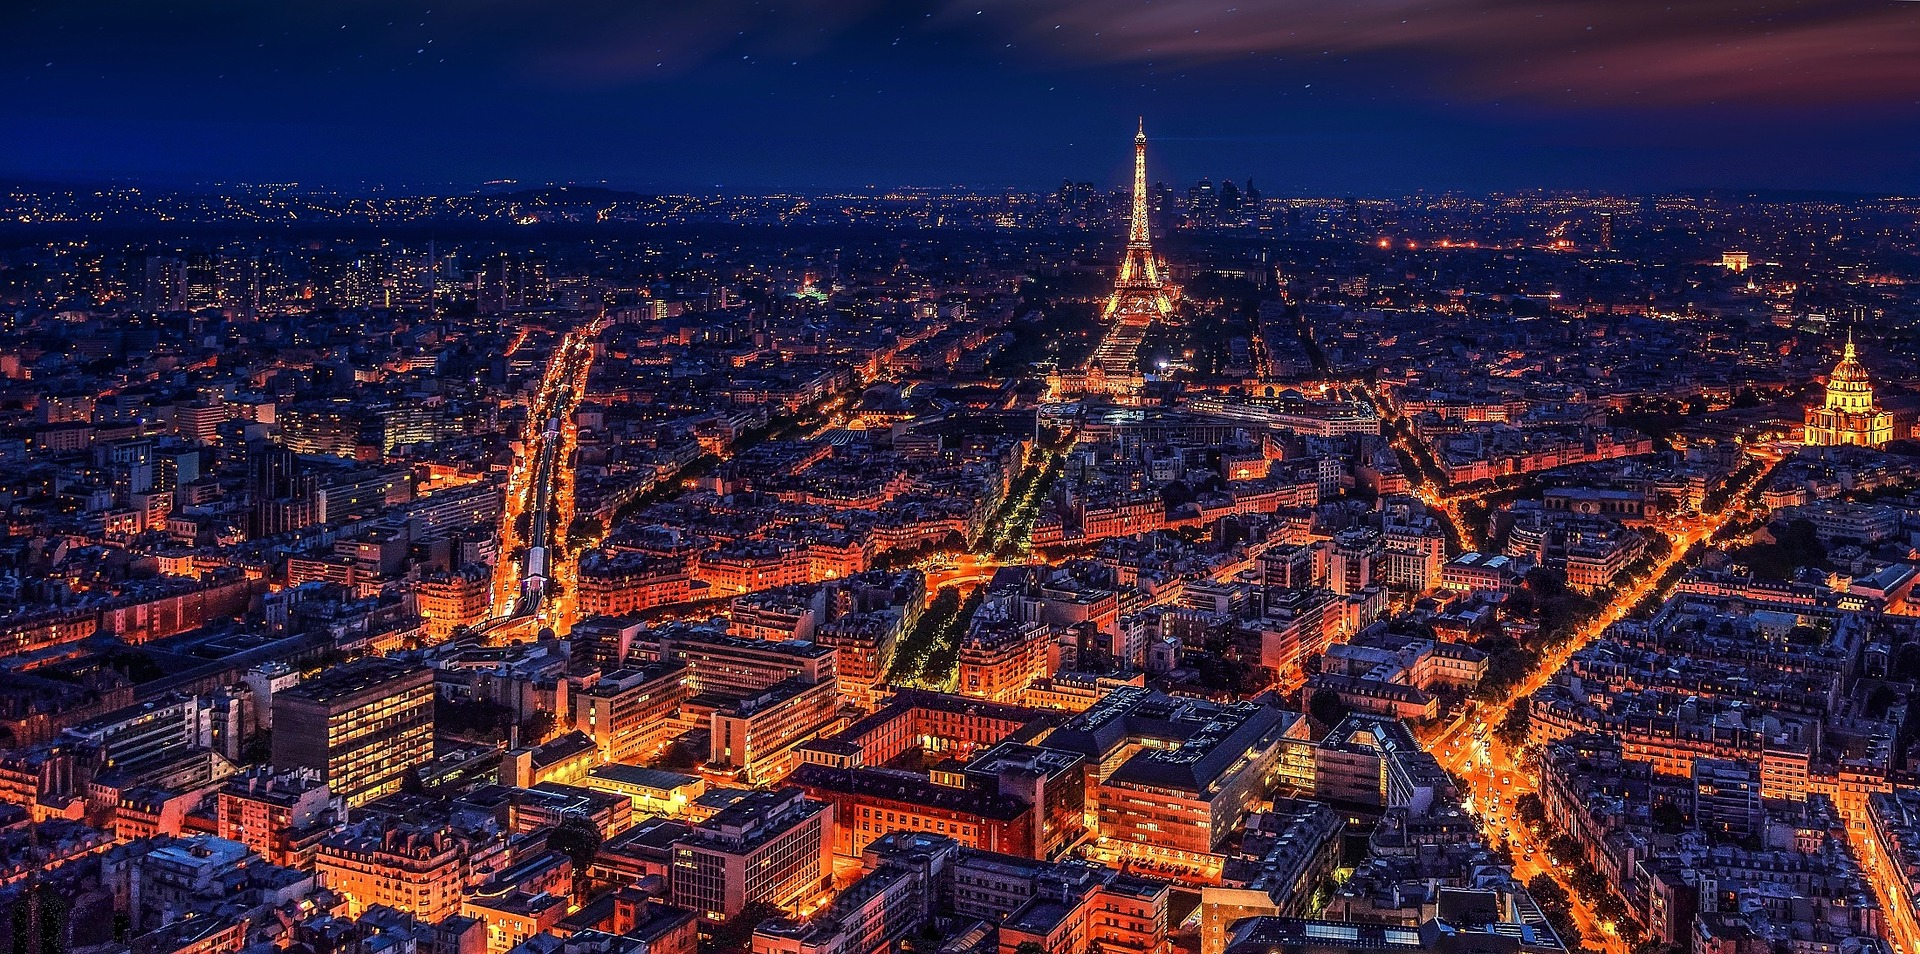 Paris, France at night, with the Eiffel Tower in the center